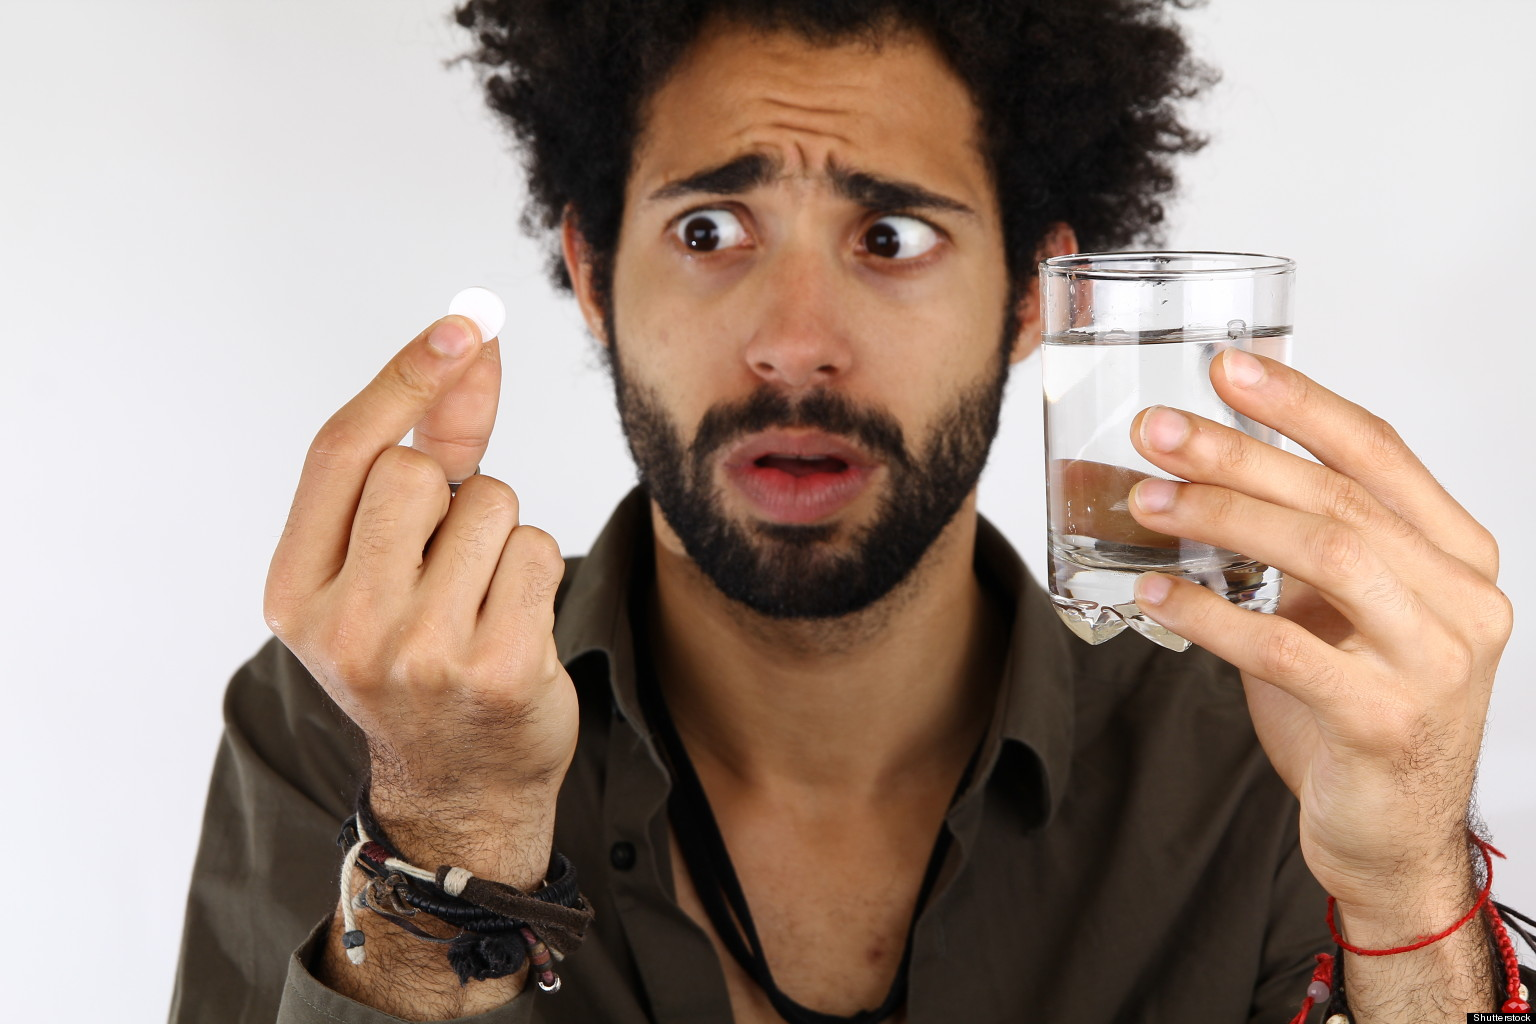 Male Pill: Can Men Be Trusted To Take Birth Control ...